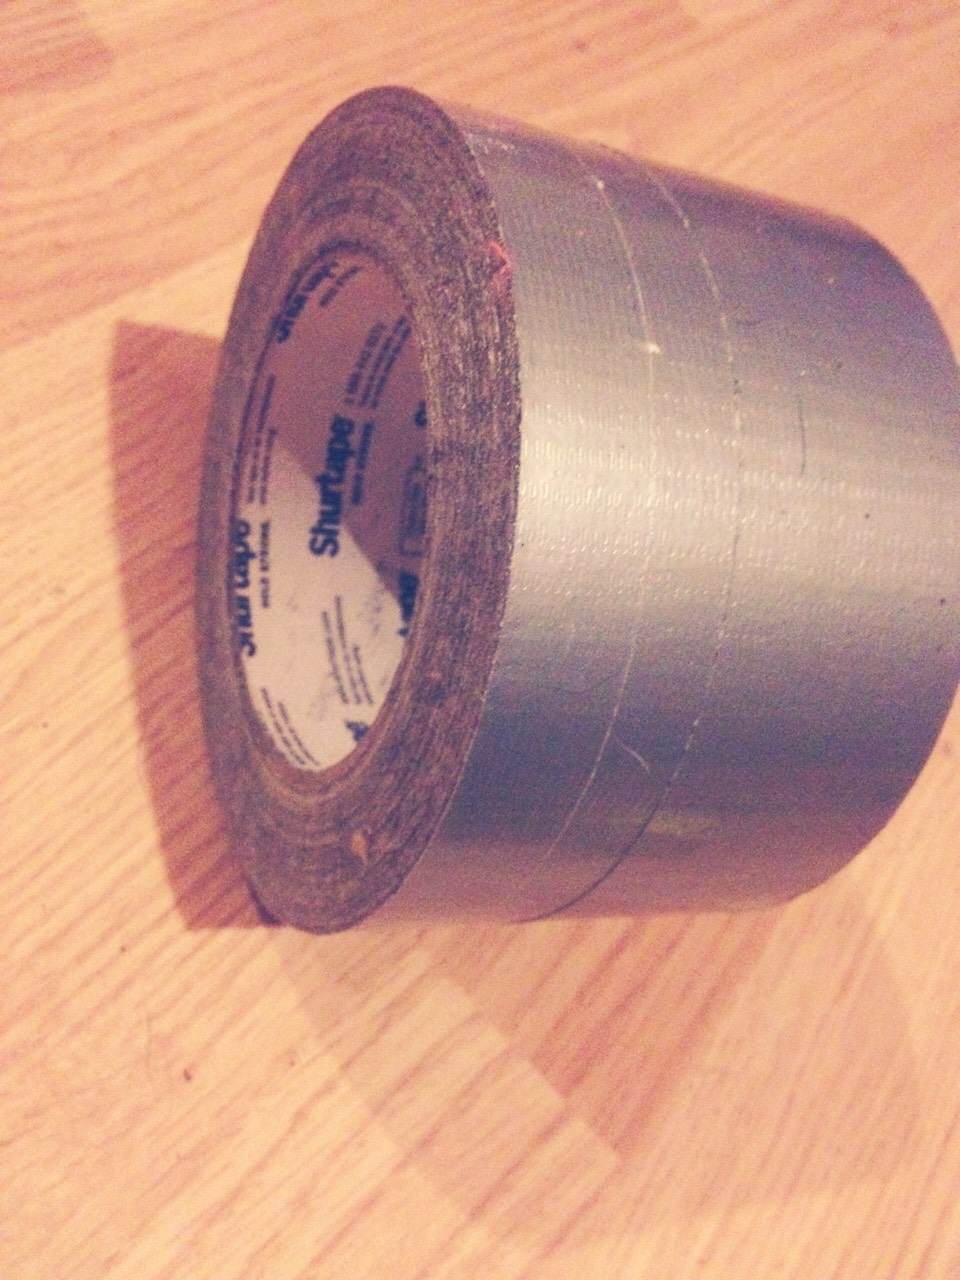 And tape ( or you can use a hot glue or you can use glue I prefer a glue gun but anything works)